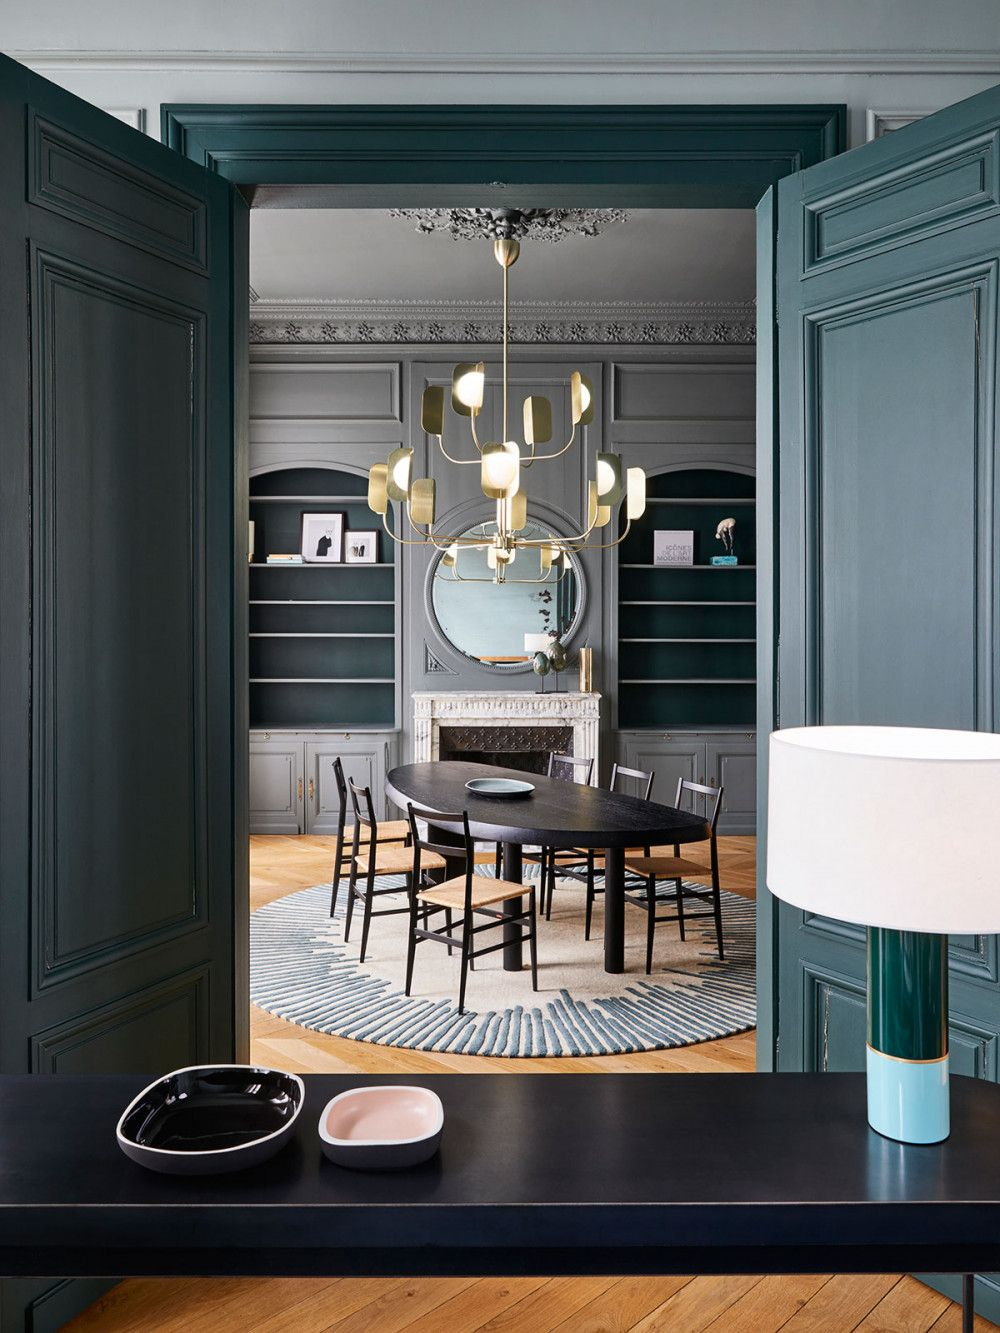 Top Interior Design Projects By Sarah Lavoine  Dining room